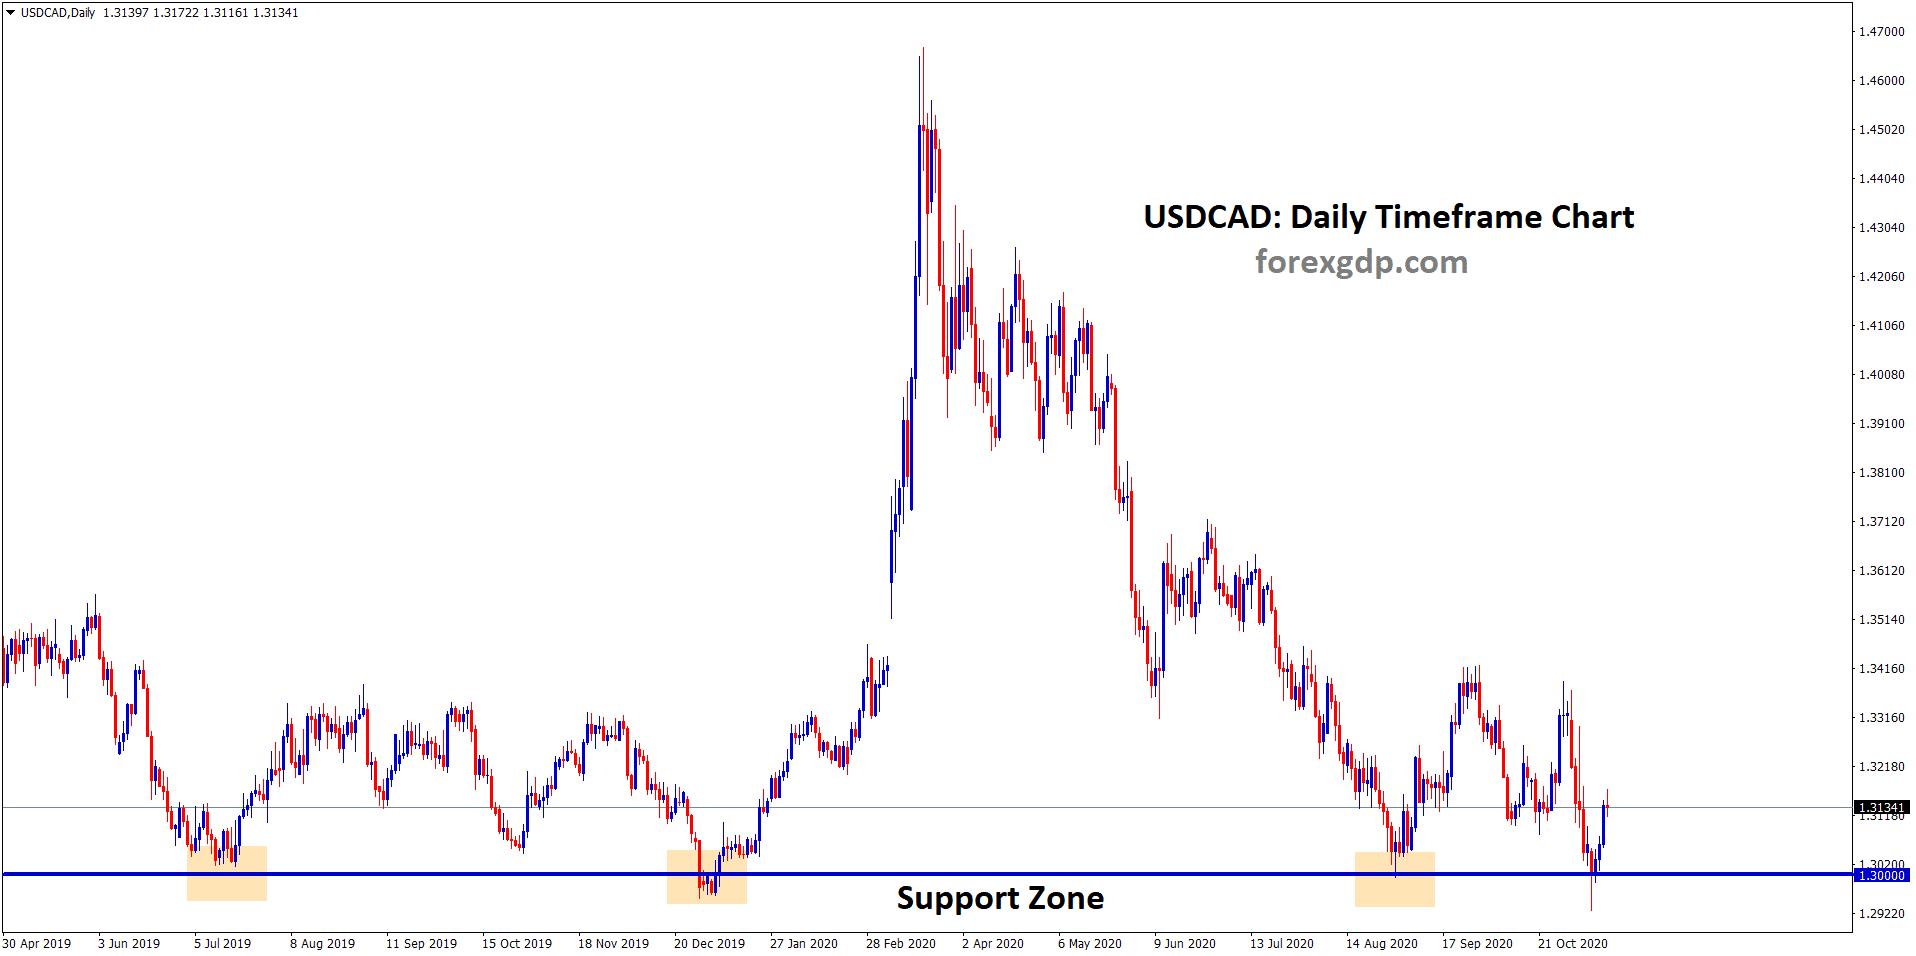 USDCADDaily SUPPORT zone bounce back